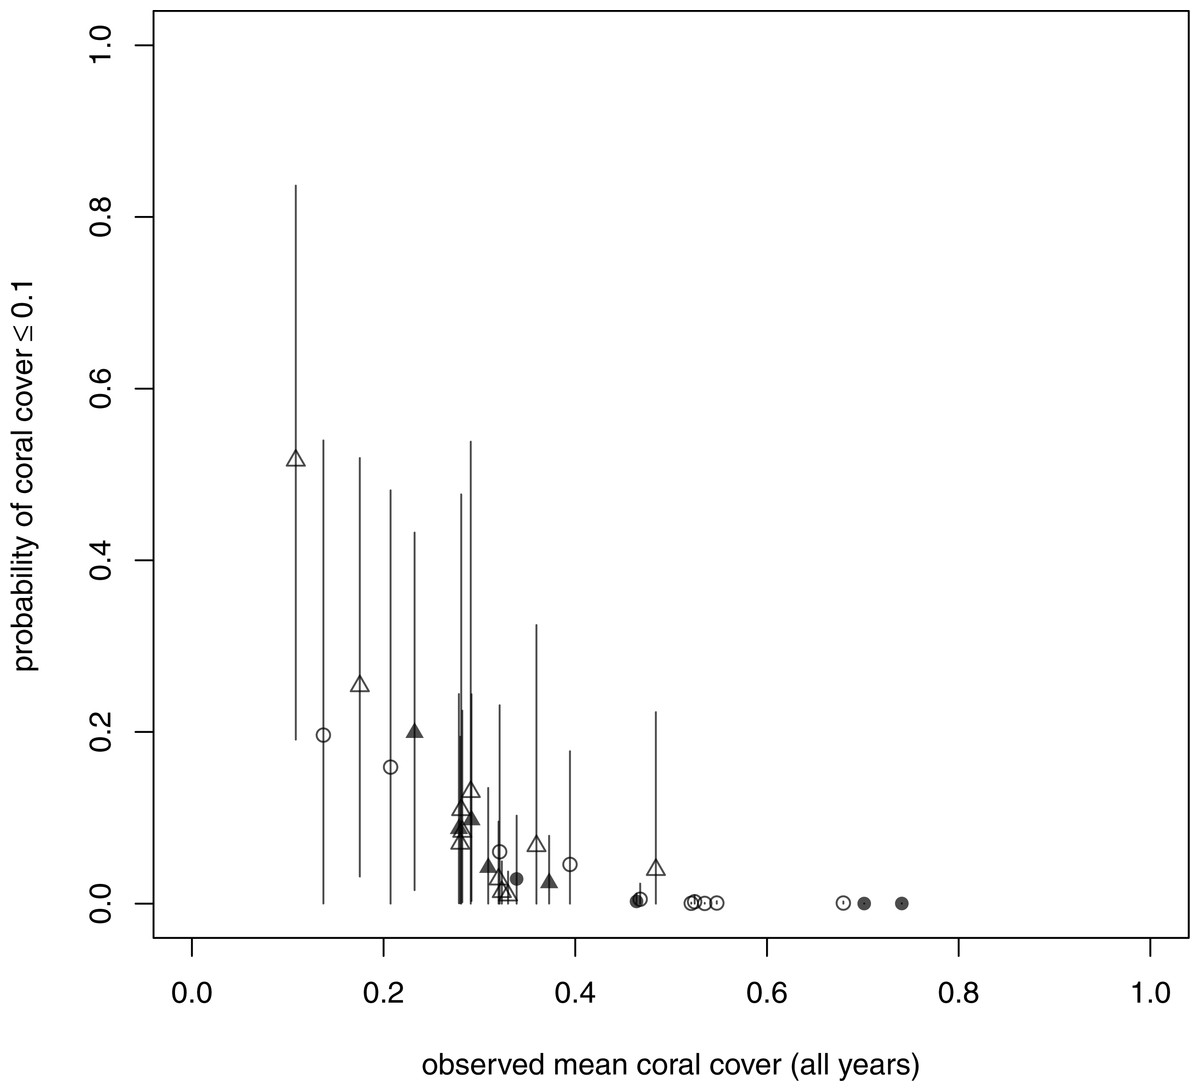 Longterm Probability Of Coral Cover Less Than Or Equal To 01 At Each Site